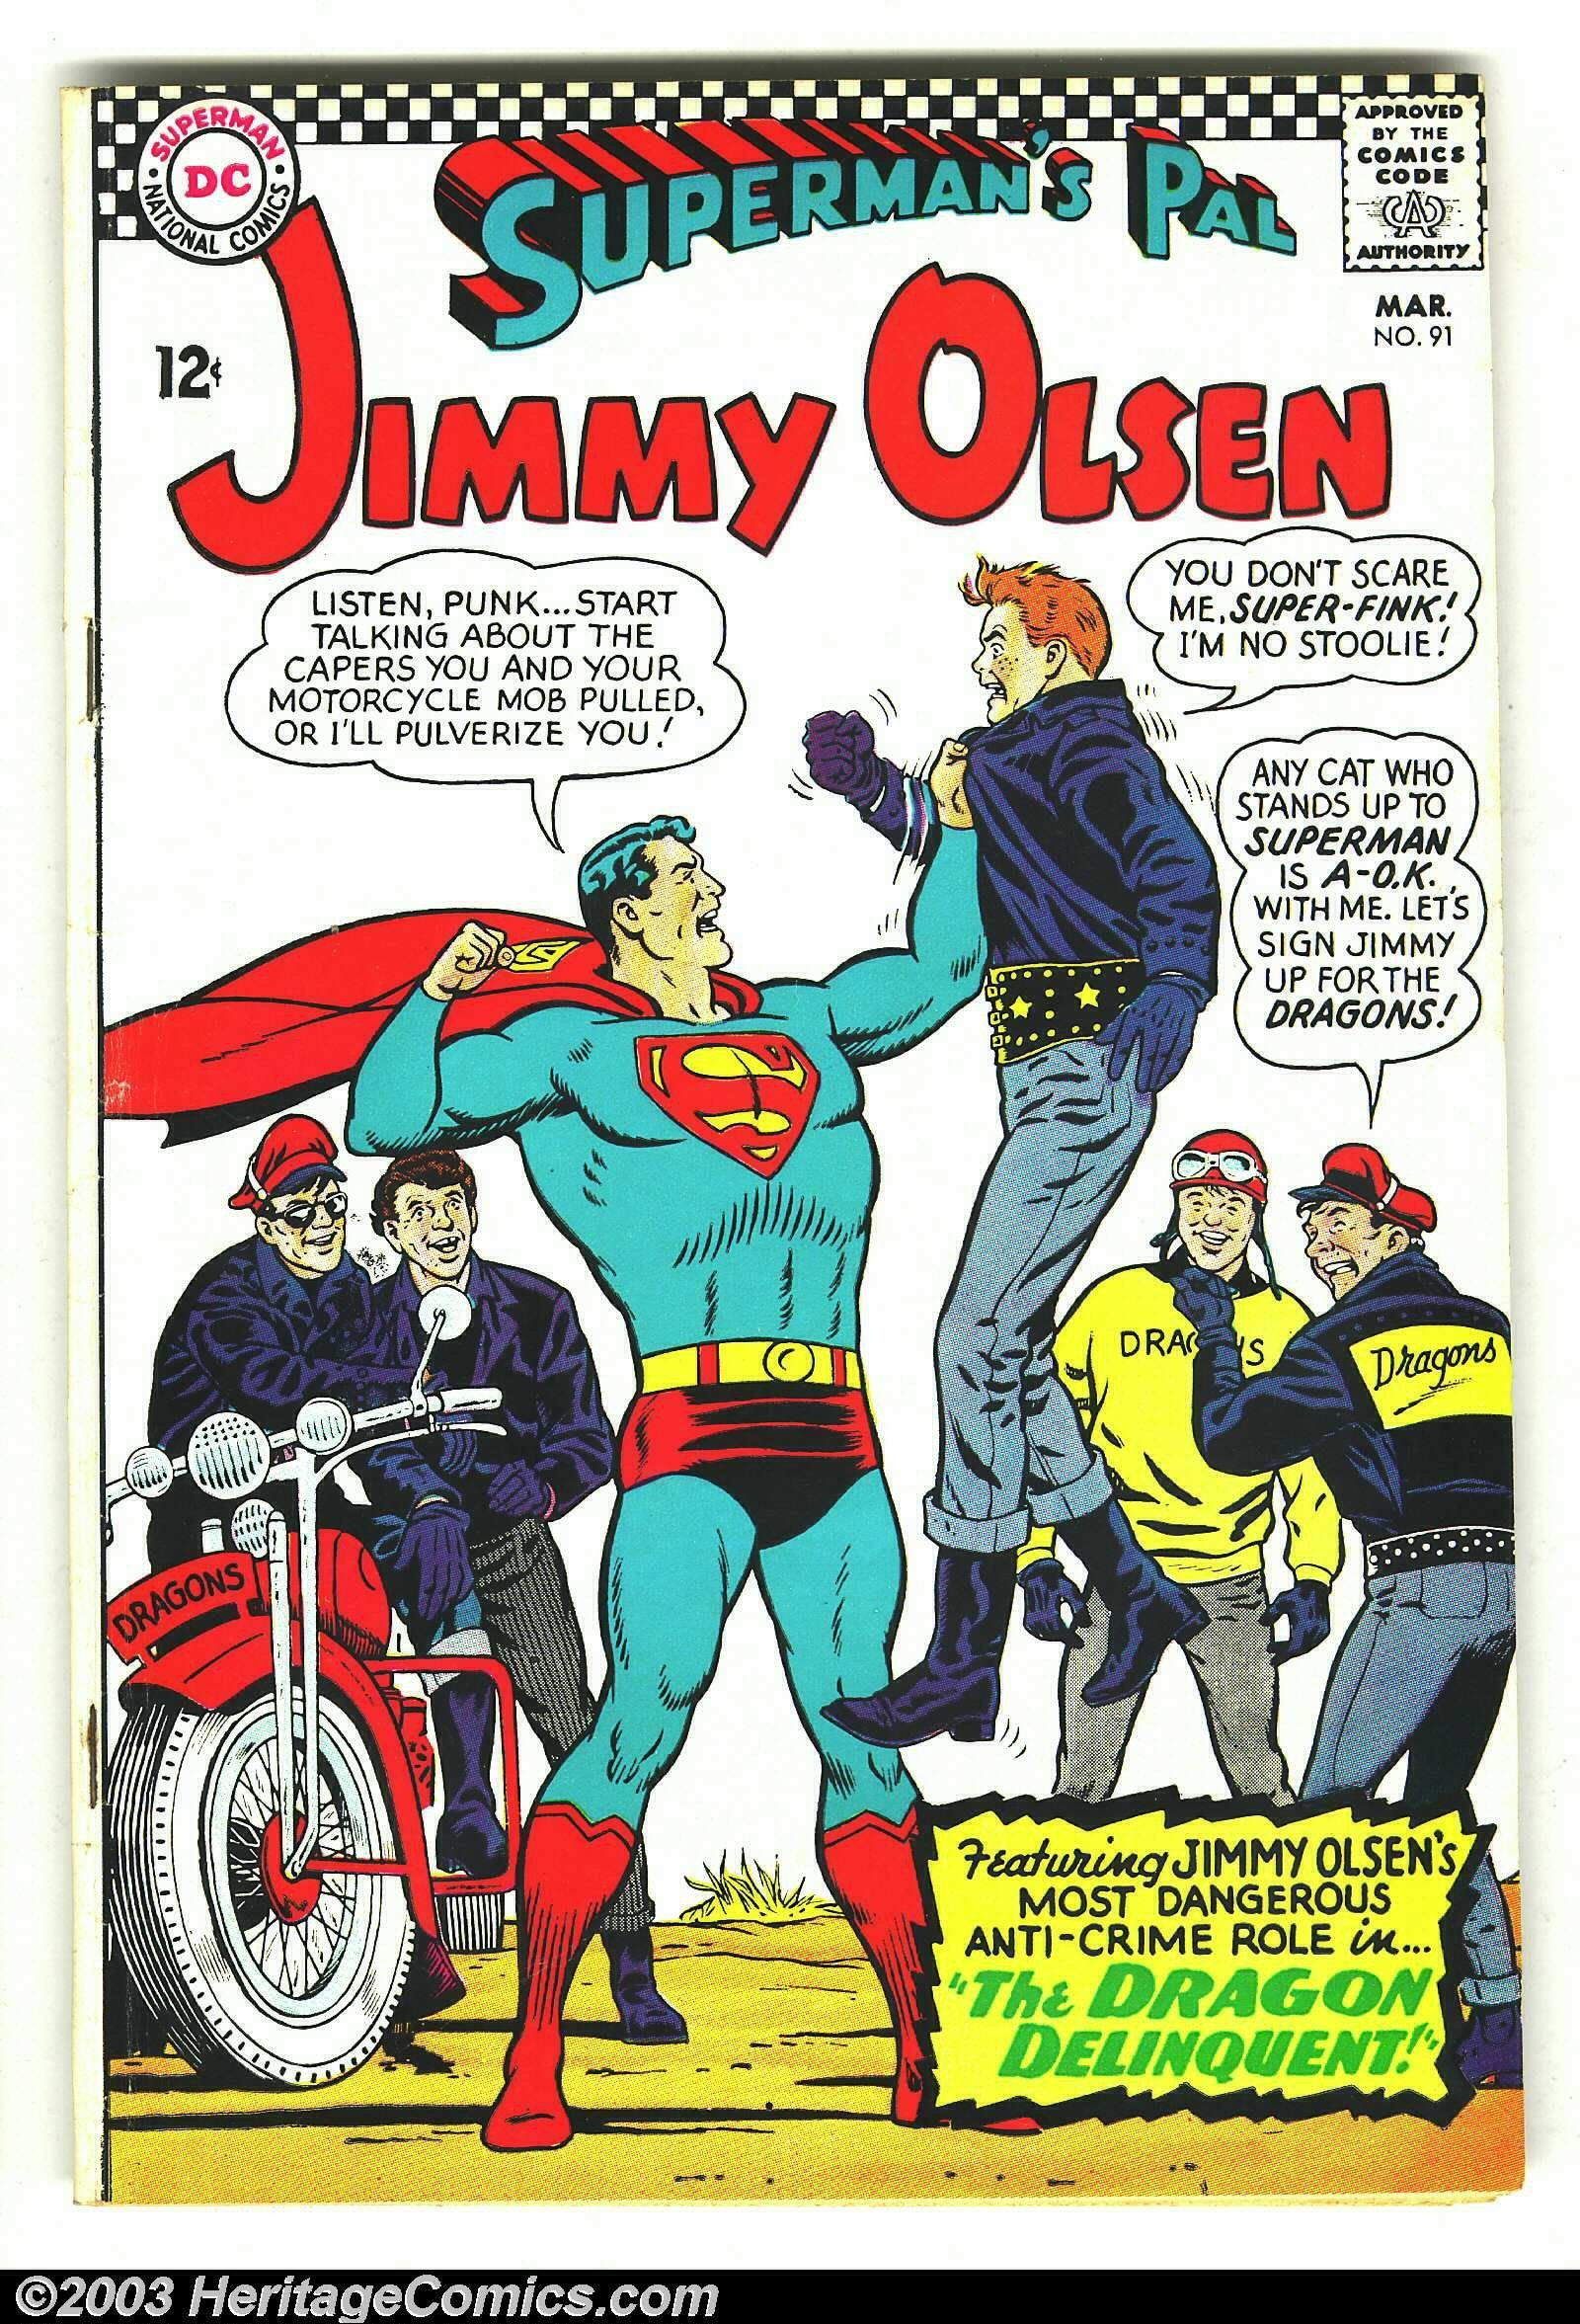 1960 - Before our comic book heroes\' values were replaced with ...